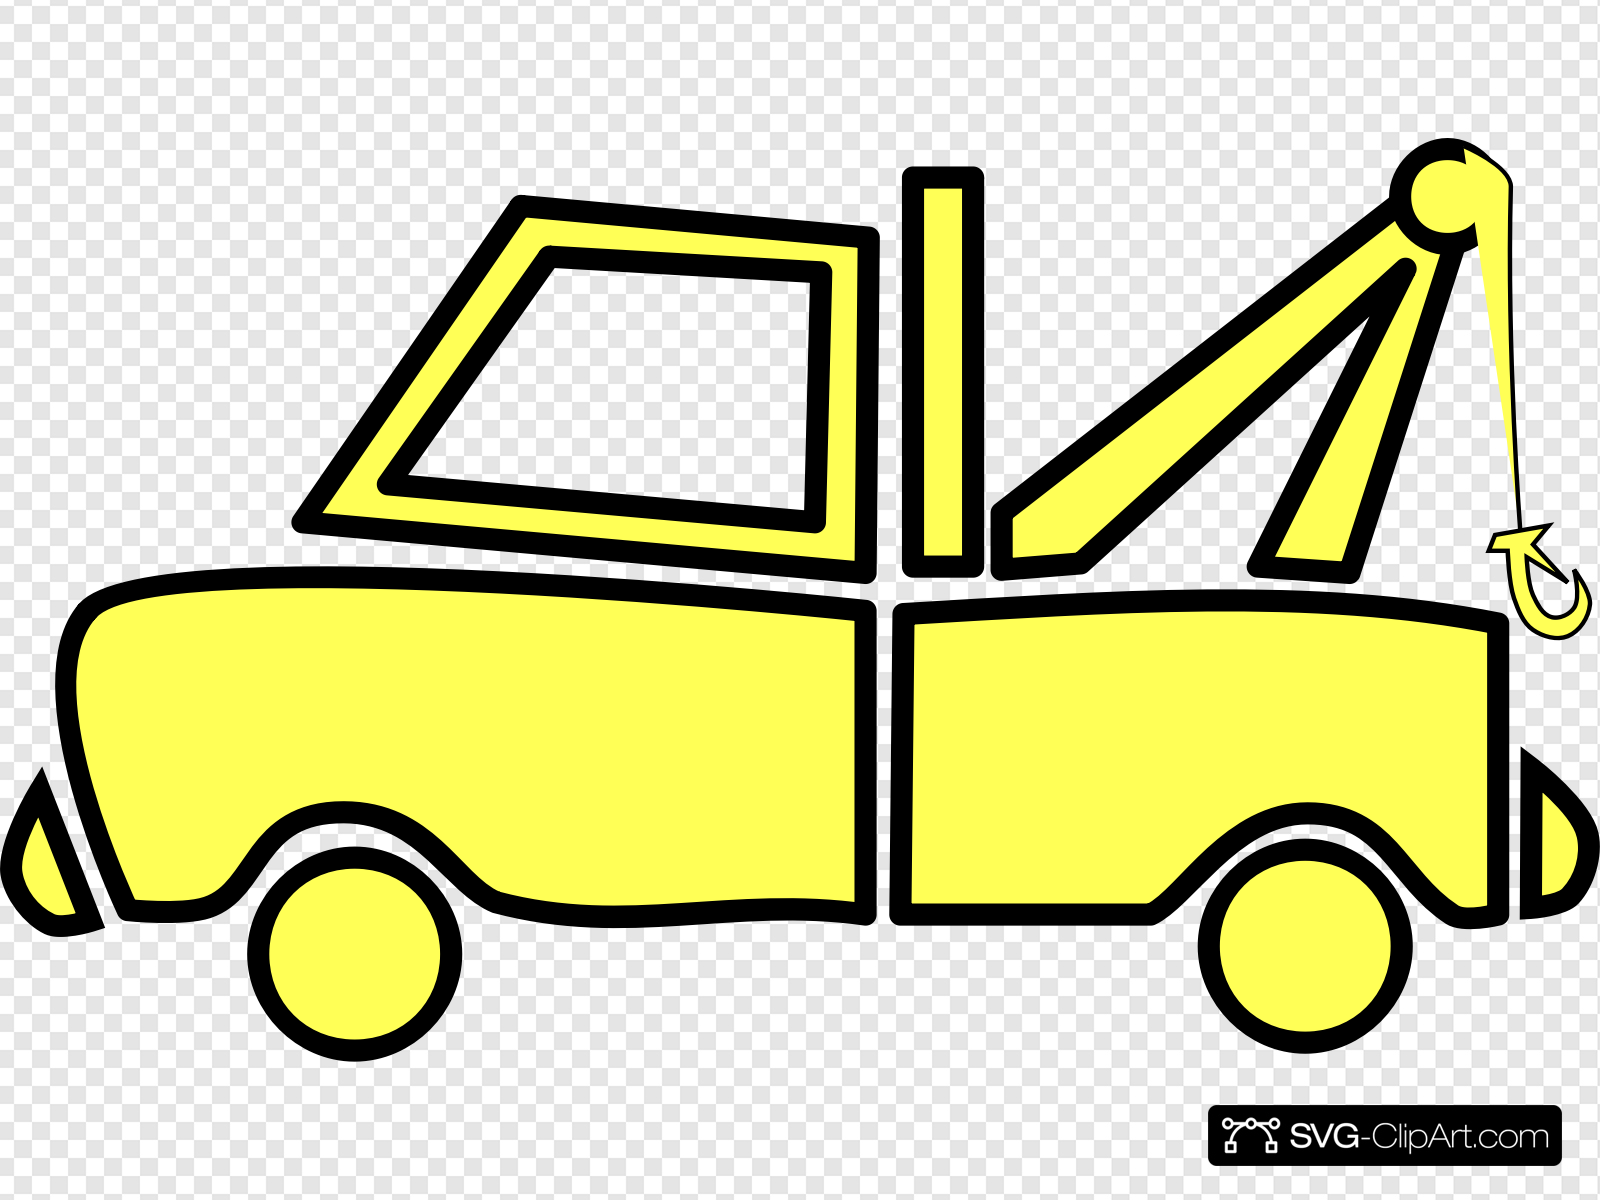 Yellow Tow Truck Clip art, Icon and SVG.